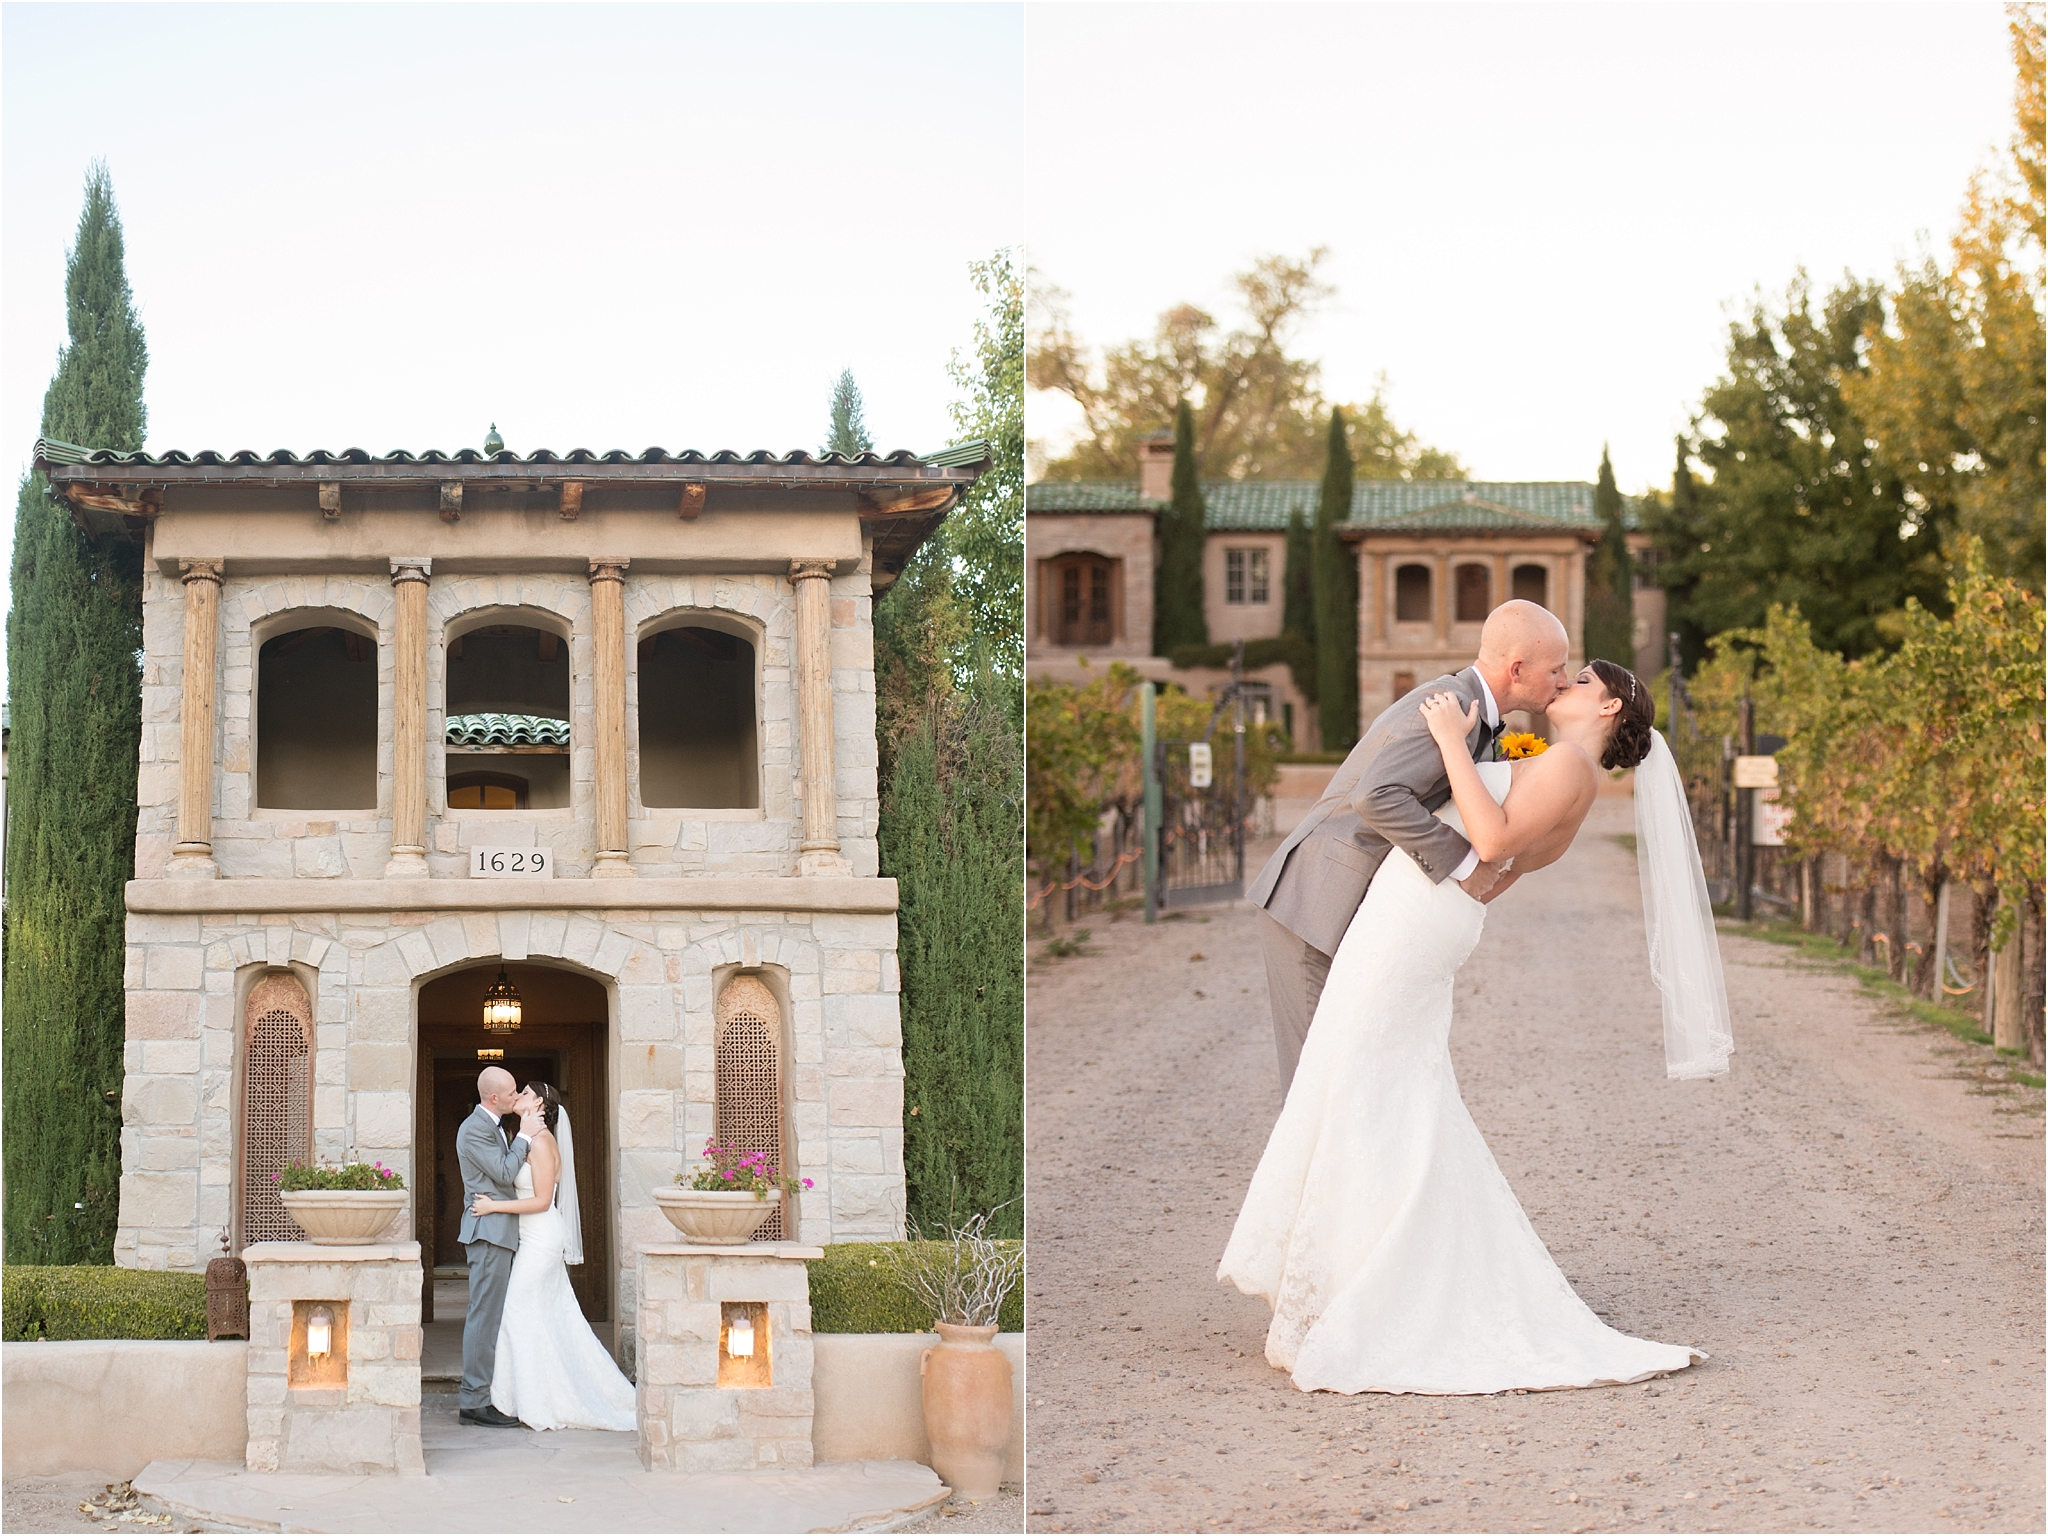 kayla kitts photography - albuquerque wedding photographer - new mexico wedding photographer - desination wedding photographer - cabo wedding photographer_0032.jpg